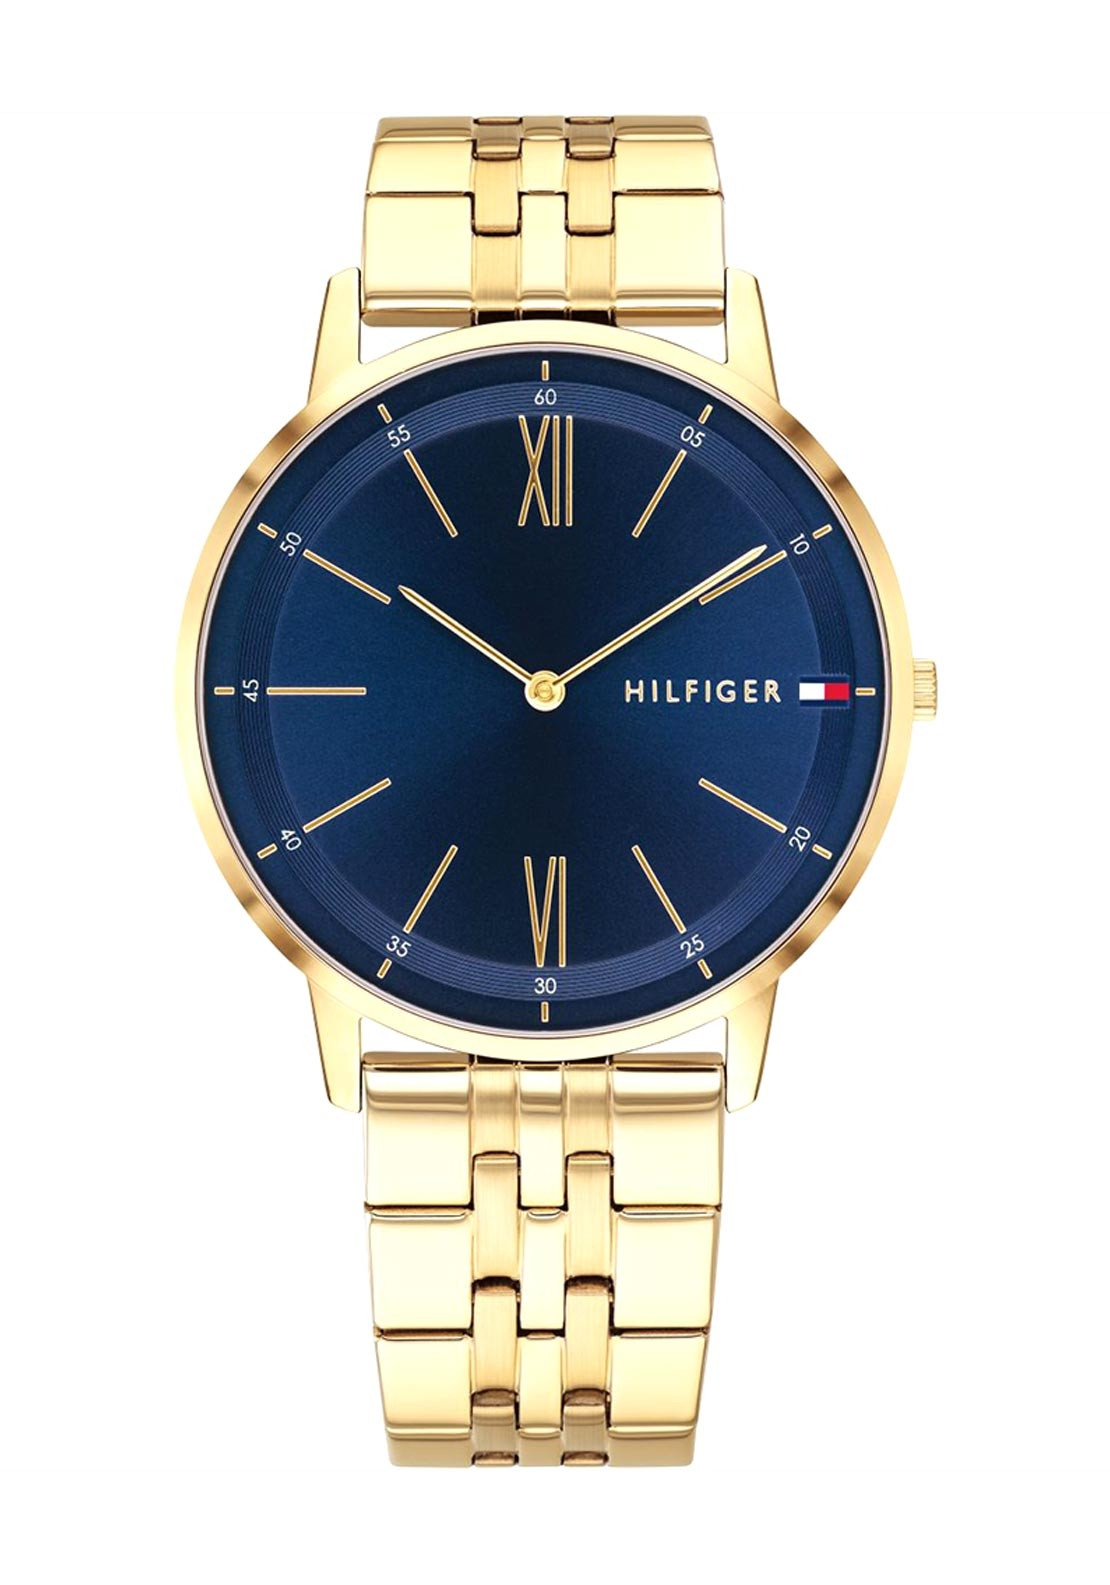 97cb7ed3 Tommy Hilfiger Mens Stainless Steel Watch, Gold & Dark Blue Dial ...